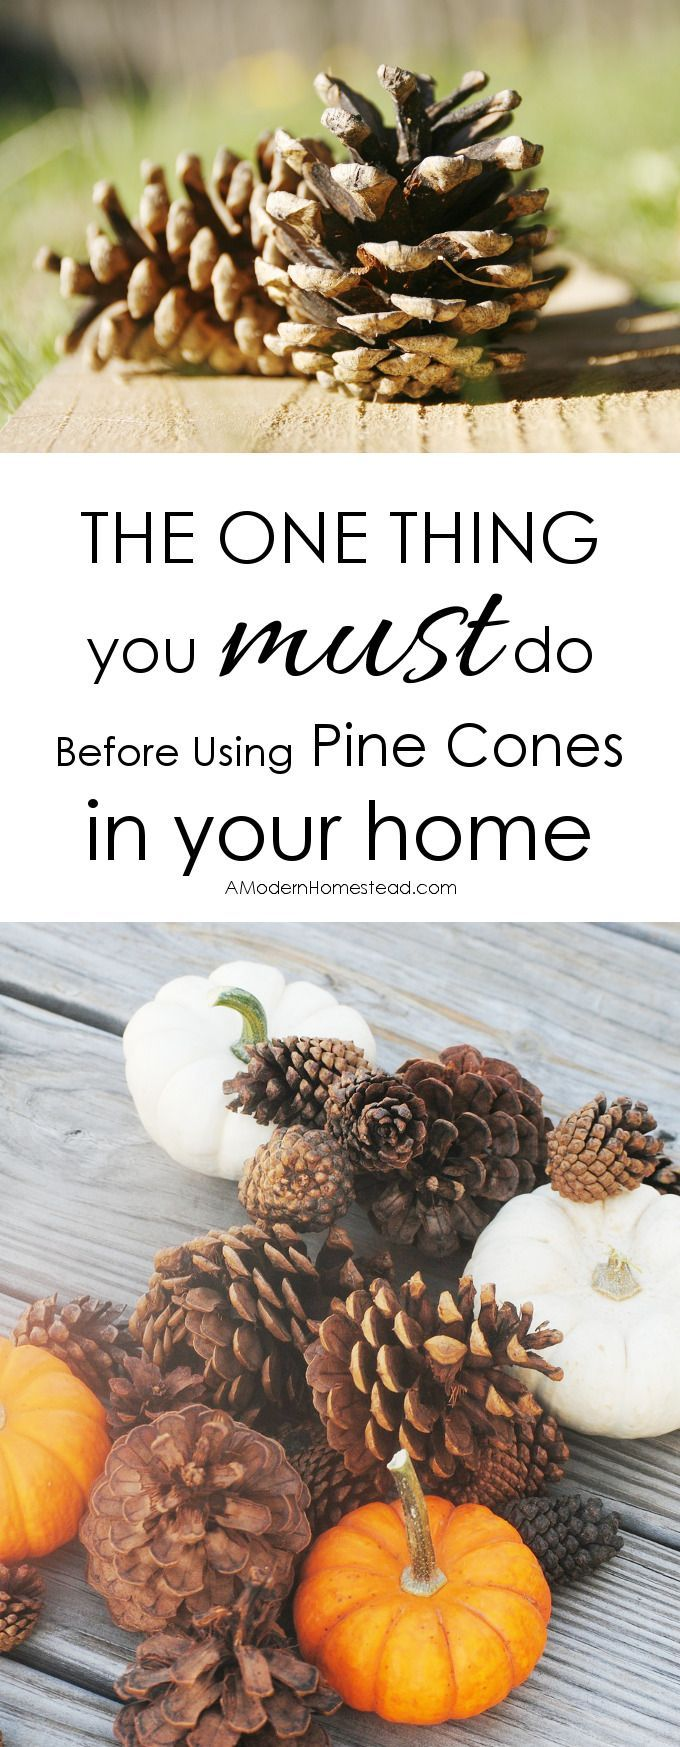 Don t forget that decorating the garden you must think about nature - The One Thing You Must Do Before Decorating With Pine Cones